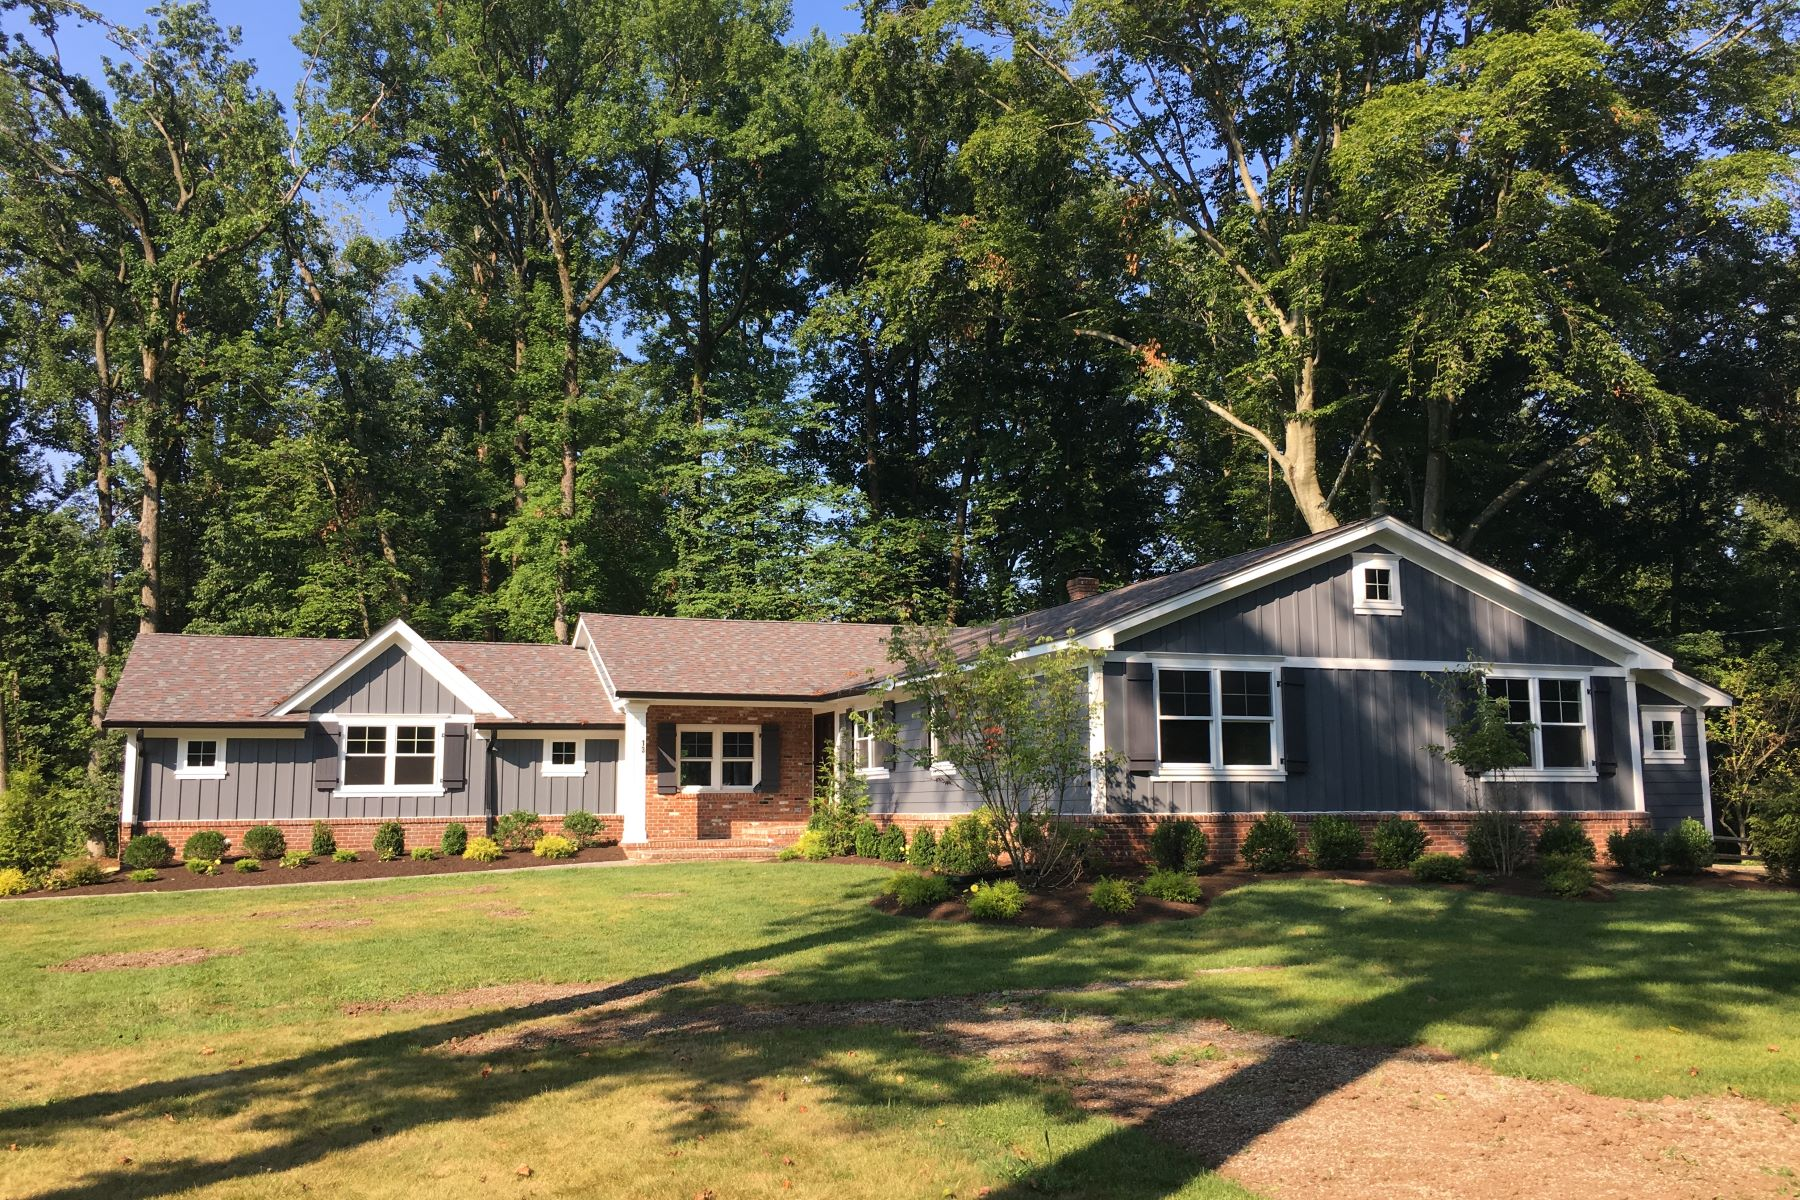 Single Family Homes for Sale at Live Serene 13 Black Birch Rd Scotch Plains, New Jersey 07076 United States